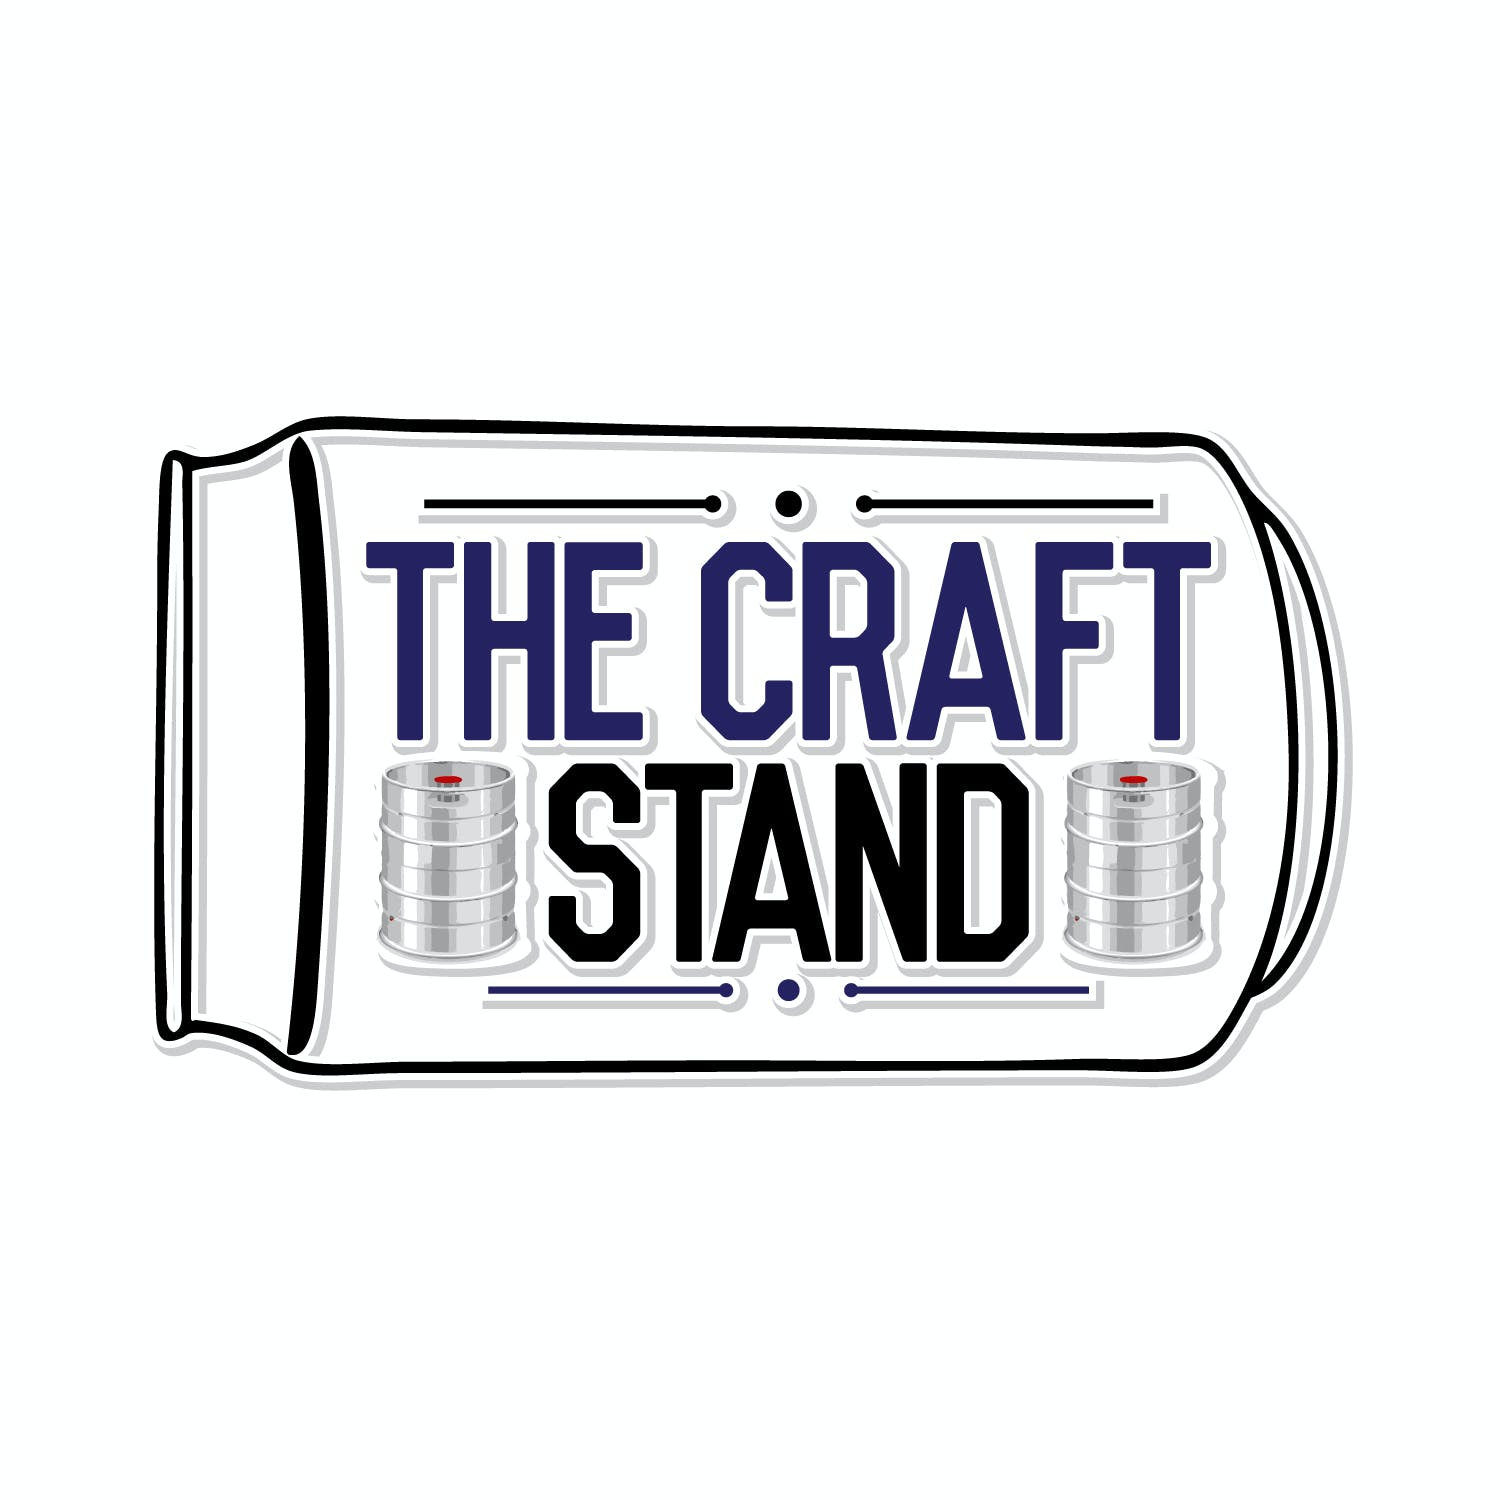 The Craft Stand logo